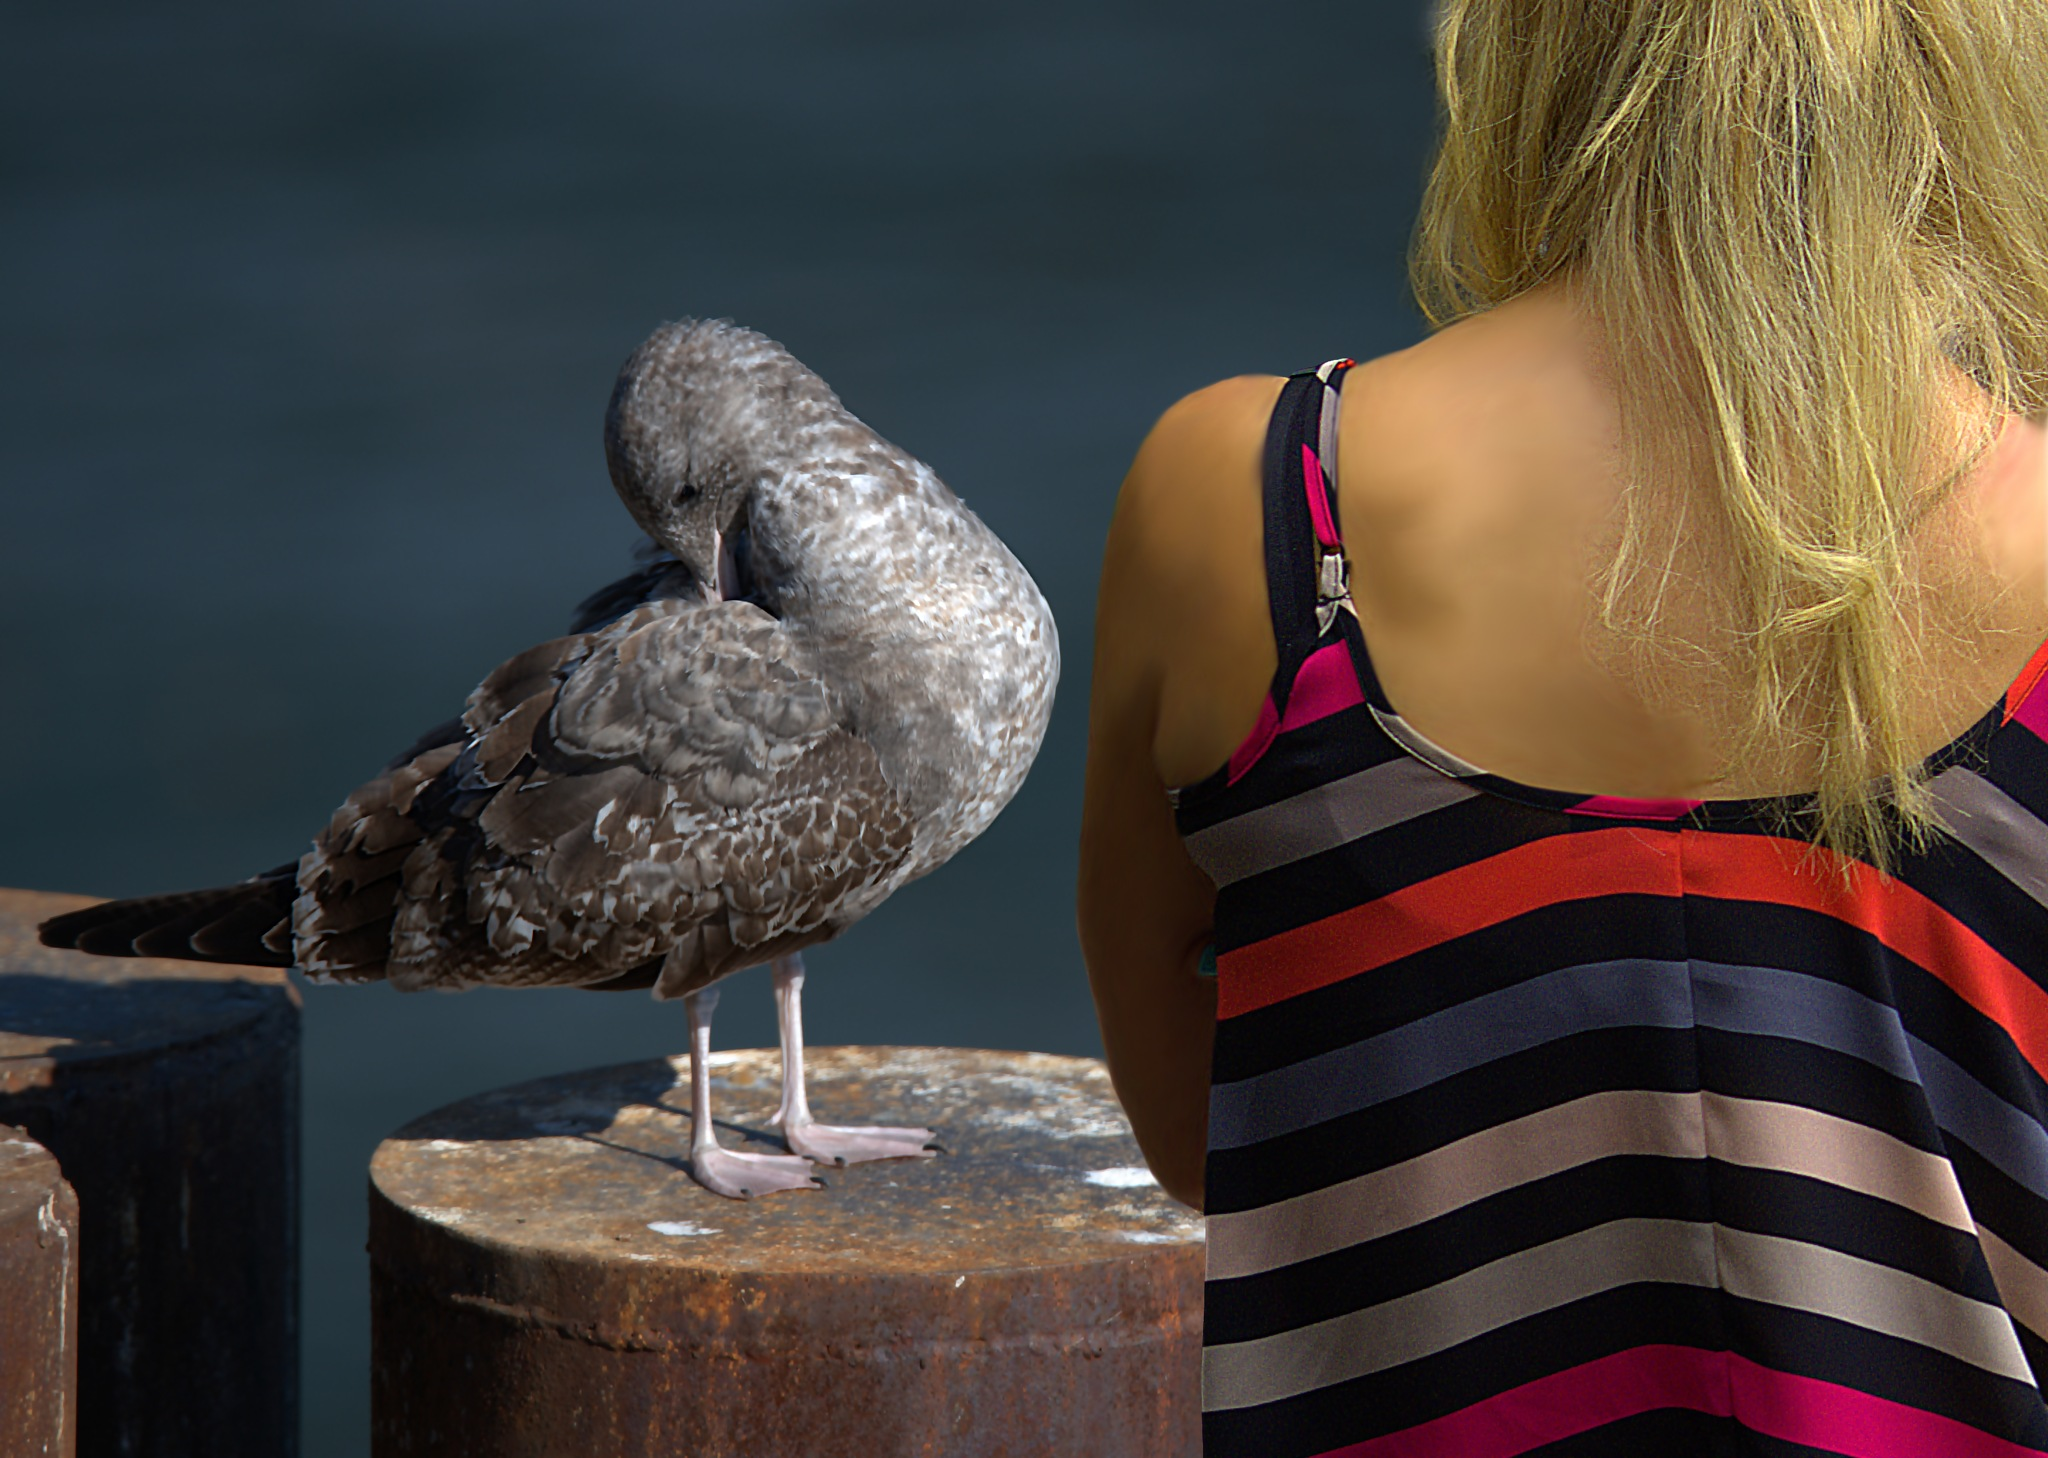 Bird Watching by pscottwong